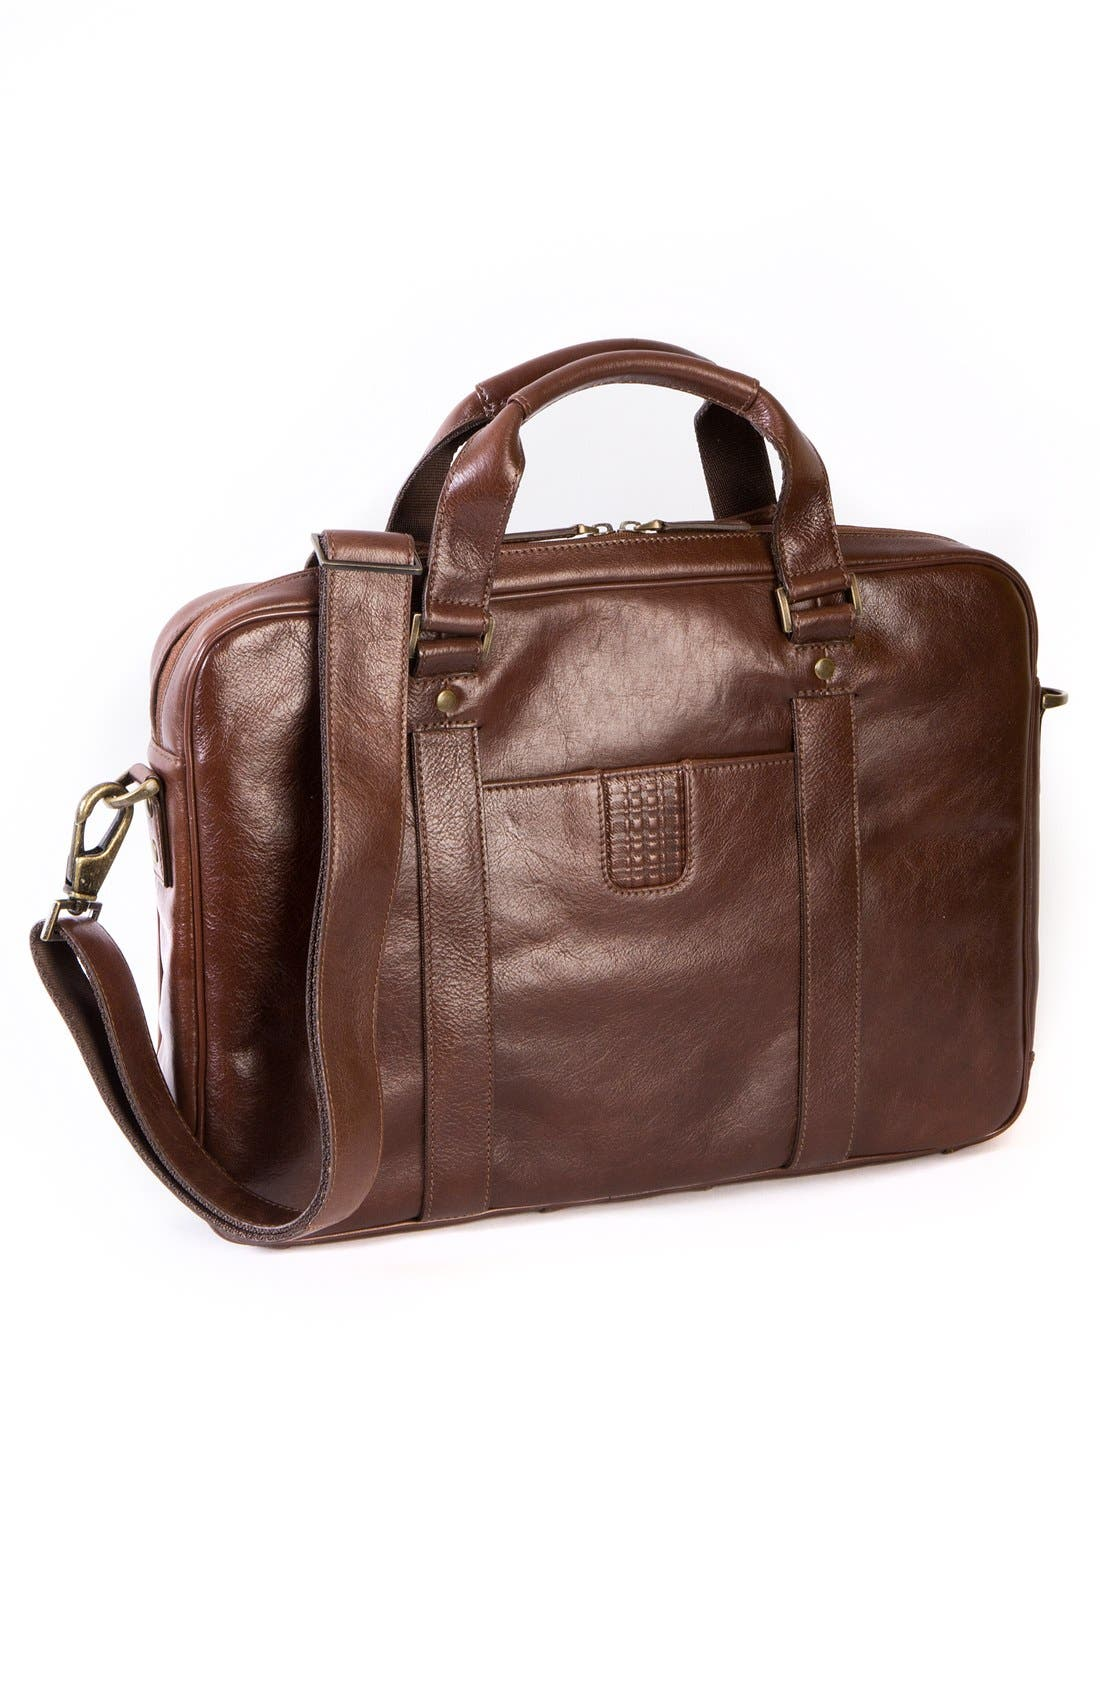 Becker Leather Briefcase,                             Alternate thumbnail 5, color,                             215